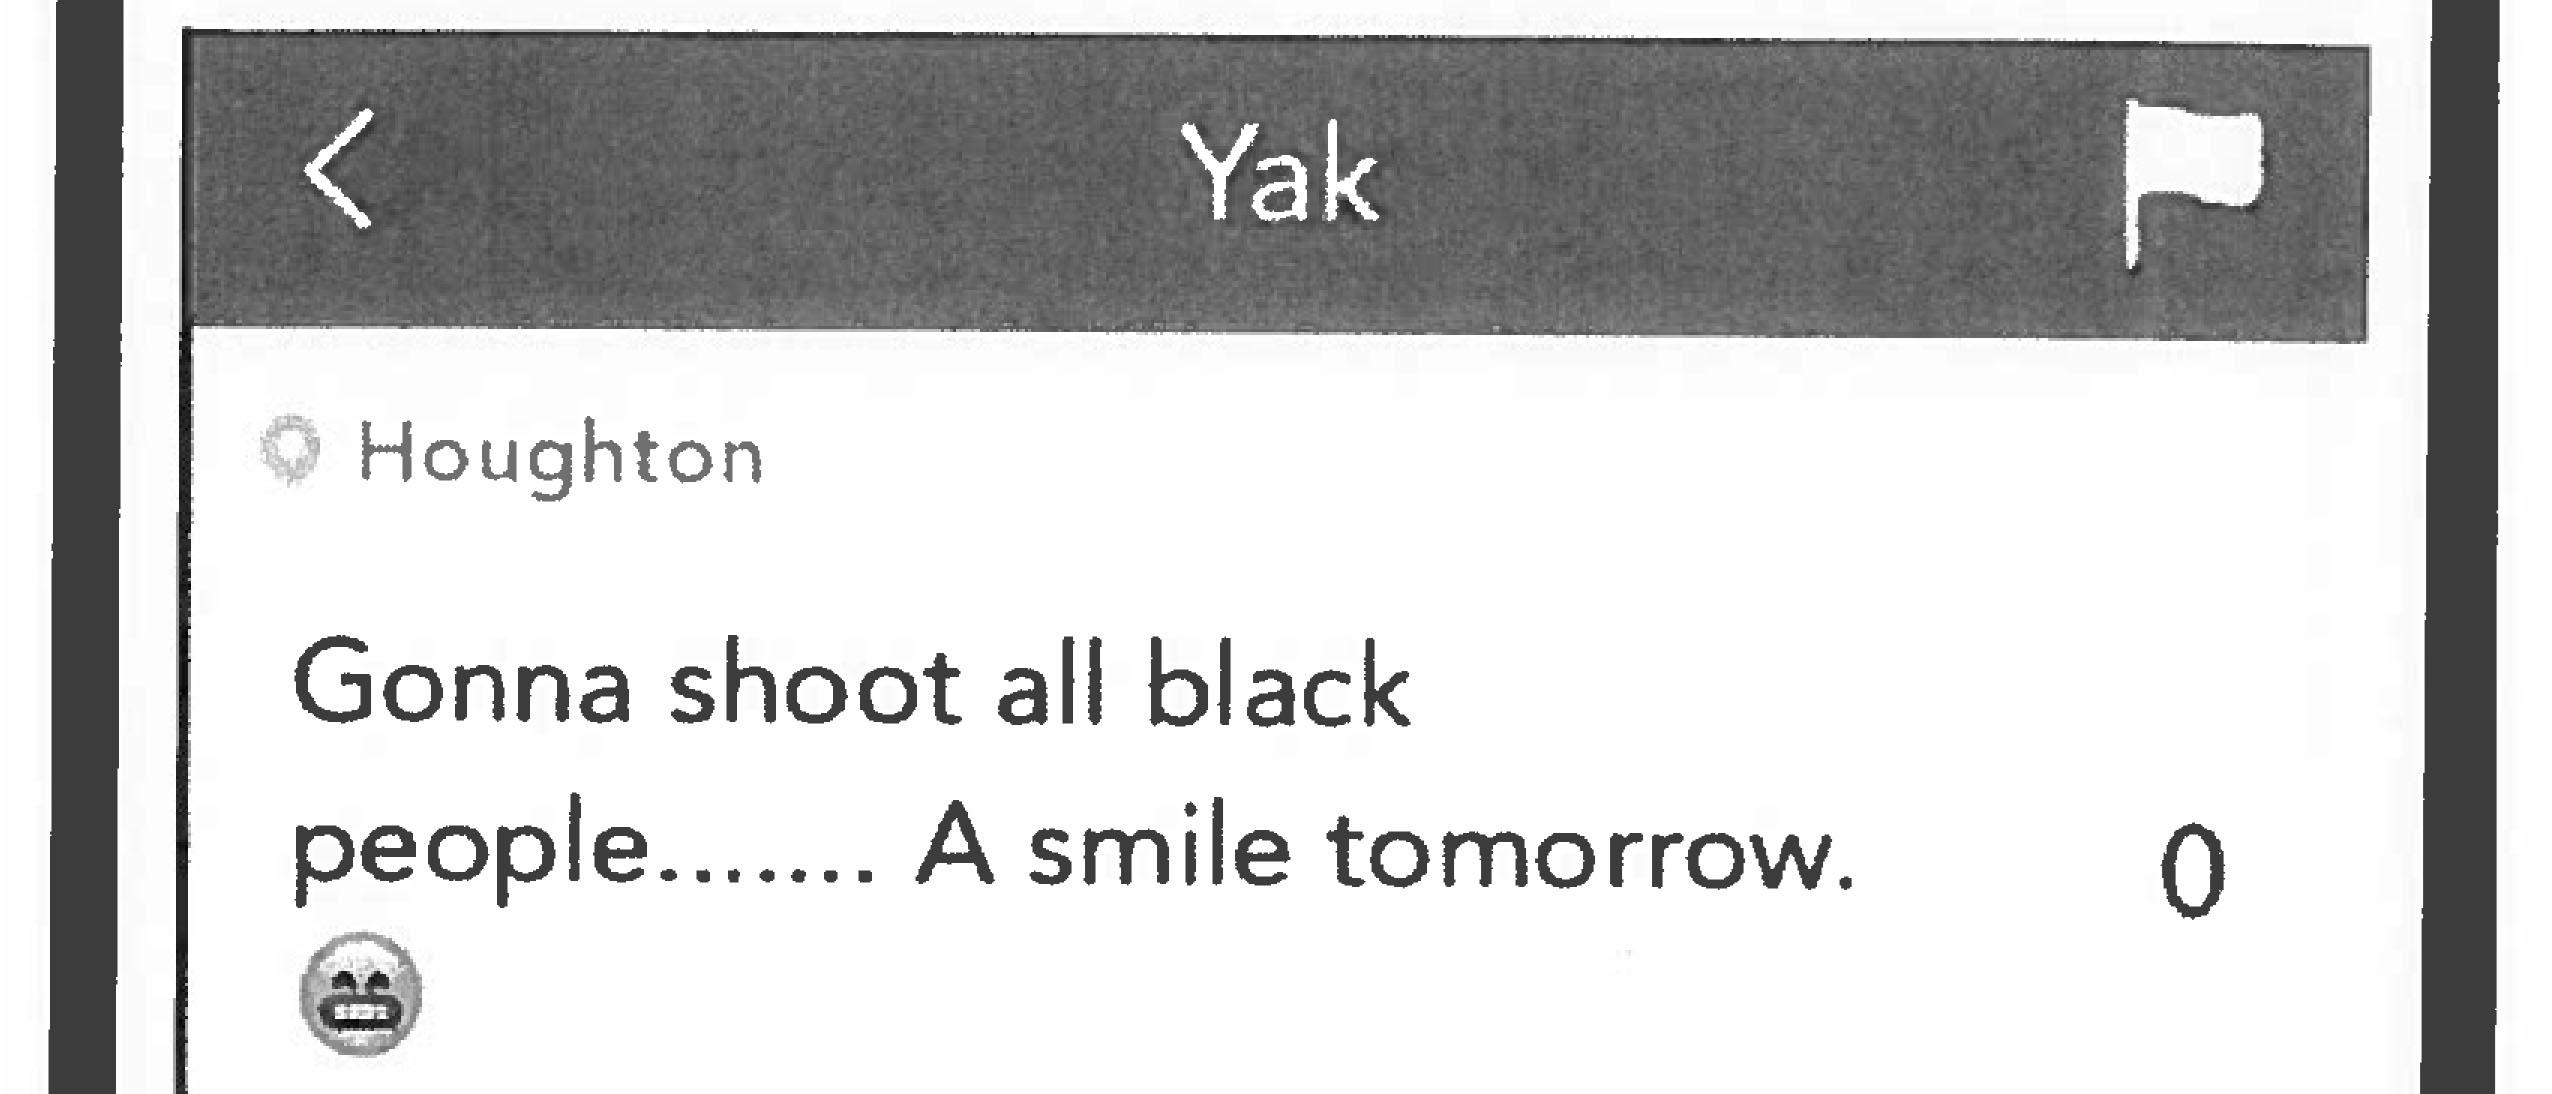 Matthew Schultz's original Yik Yak post, published on Nov. 15, 2015, led to his expulsion in January, 2016. Schultz accuses Tech of actively encouraging the public to believe that his post simply said that he was